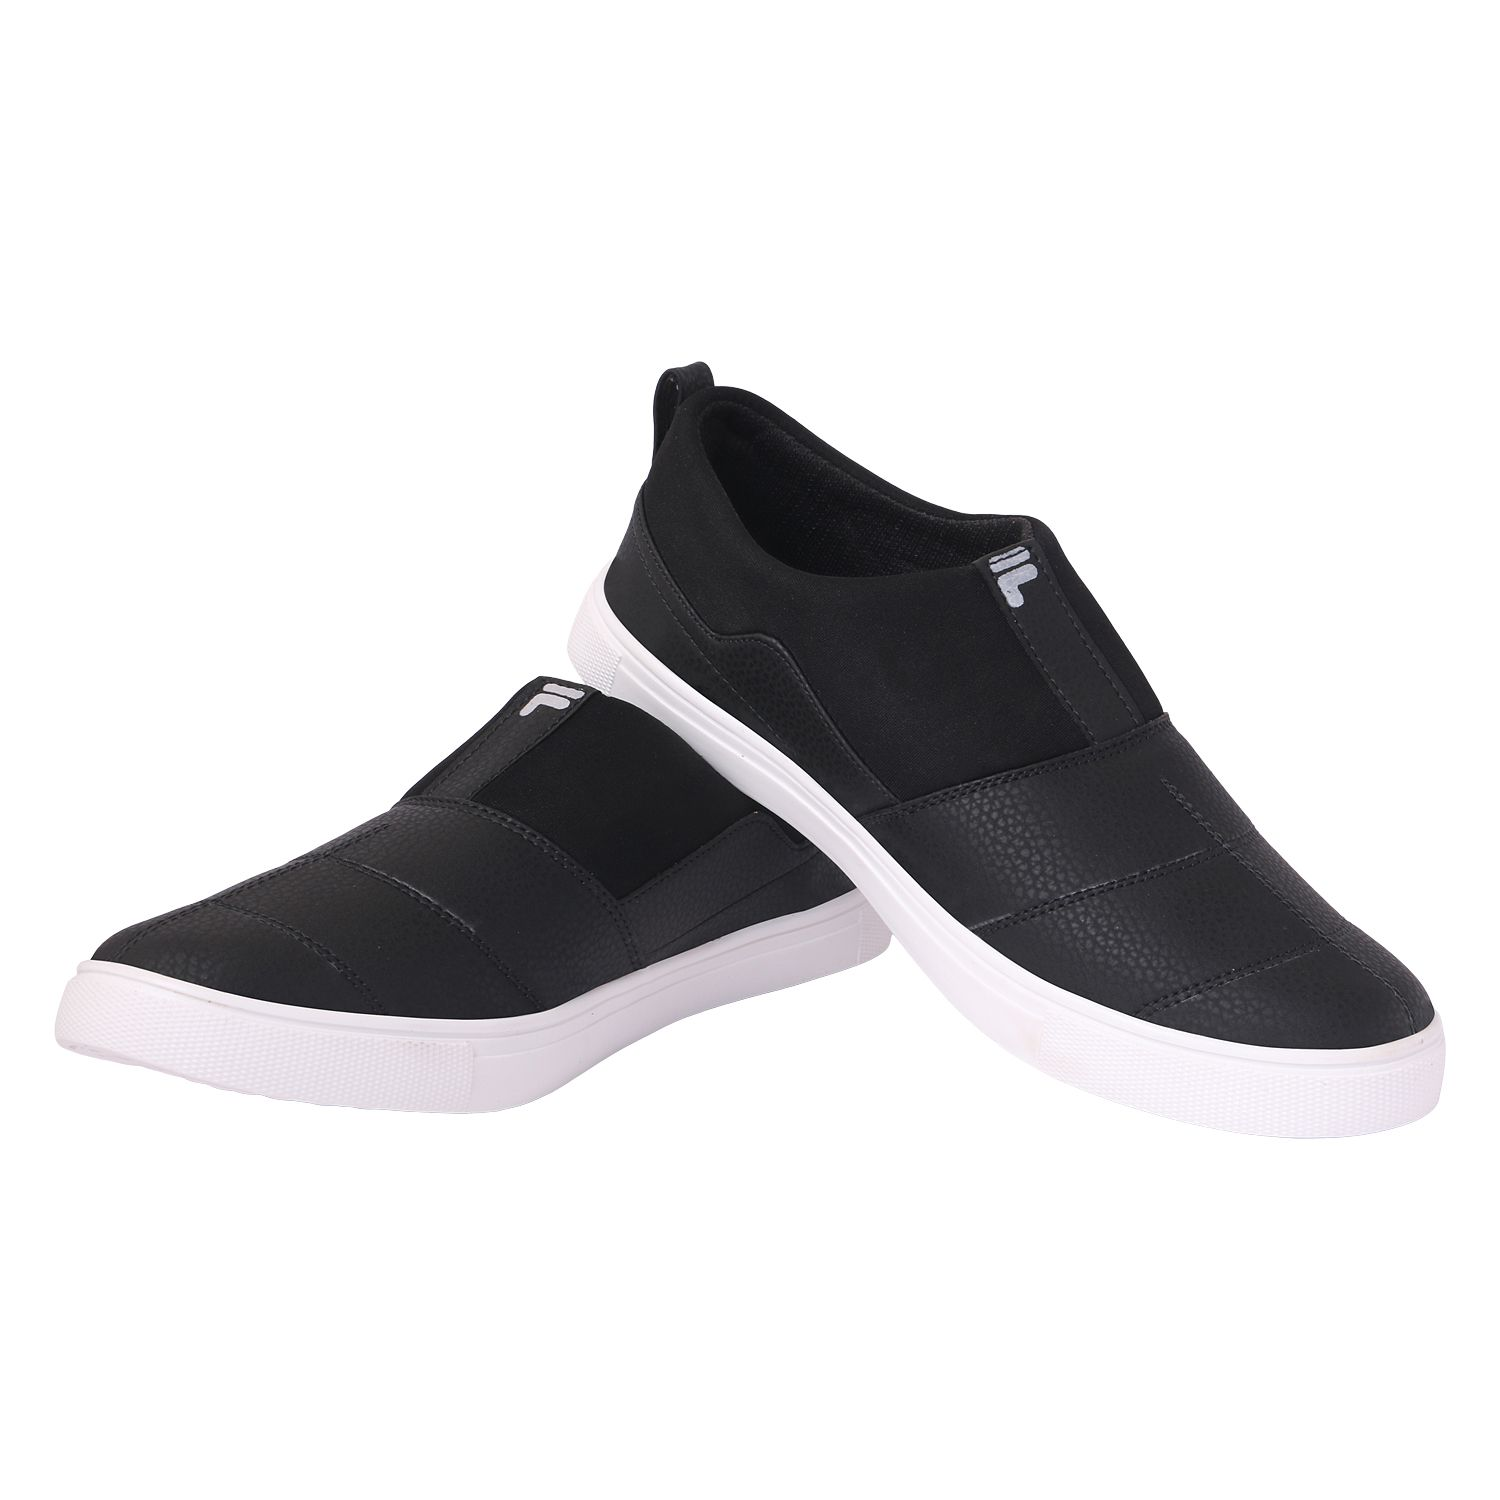 ADDY Sneakers Black Casual Shoes cheap many kinds of cheap get to buy footlocker pictures online for sale footlocker vszH1